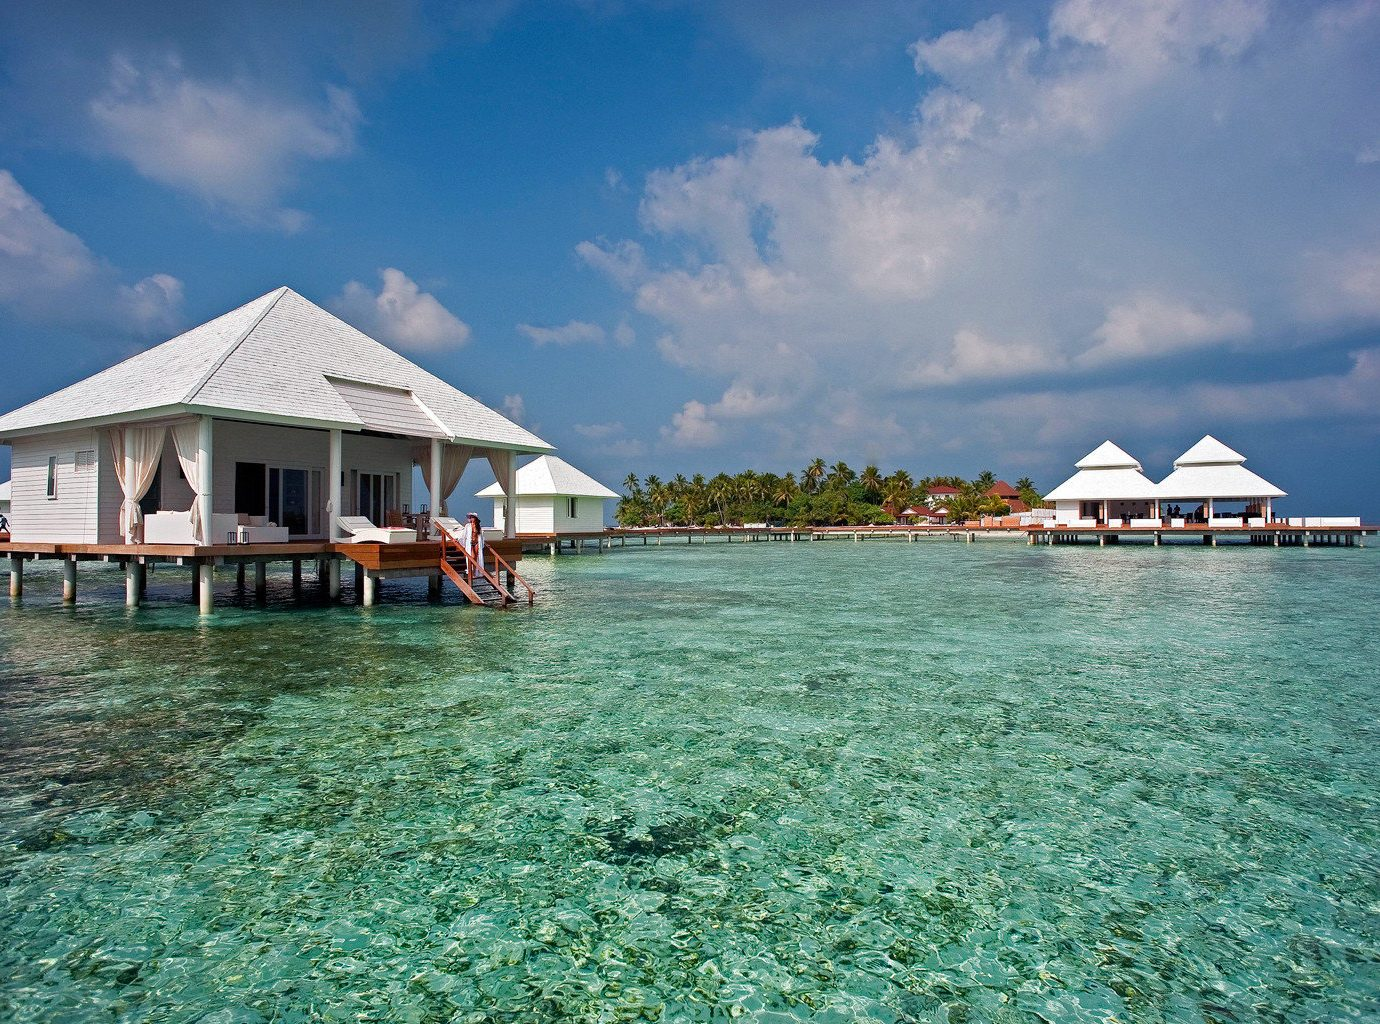 Adventure All-inclusive Beach Beachfront Hotels Play Scenic views Trip Ideas outdoor water sky house Boat Sea geographical feature Lake Ocean caribbean shore vacation Island Coast bay Lagoon Resort Nature tropics cove dock cape vehicle docked surrounded